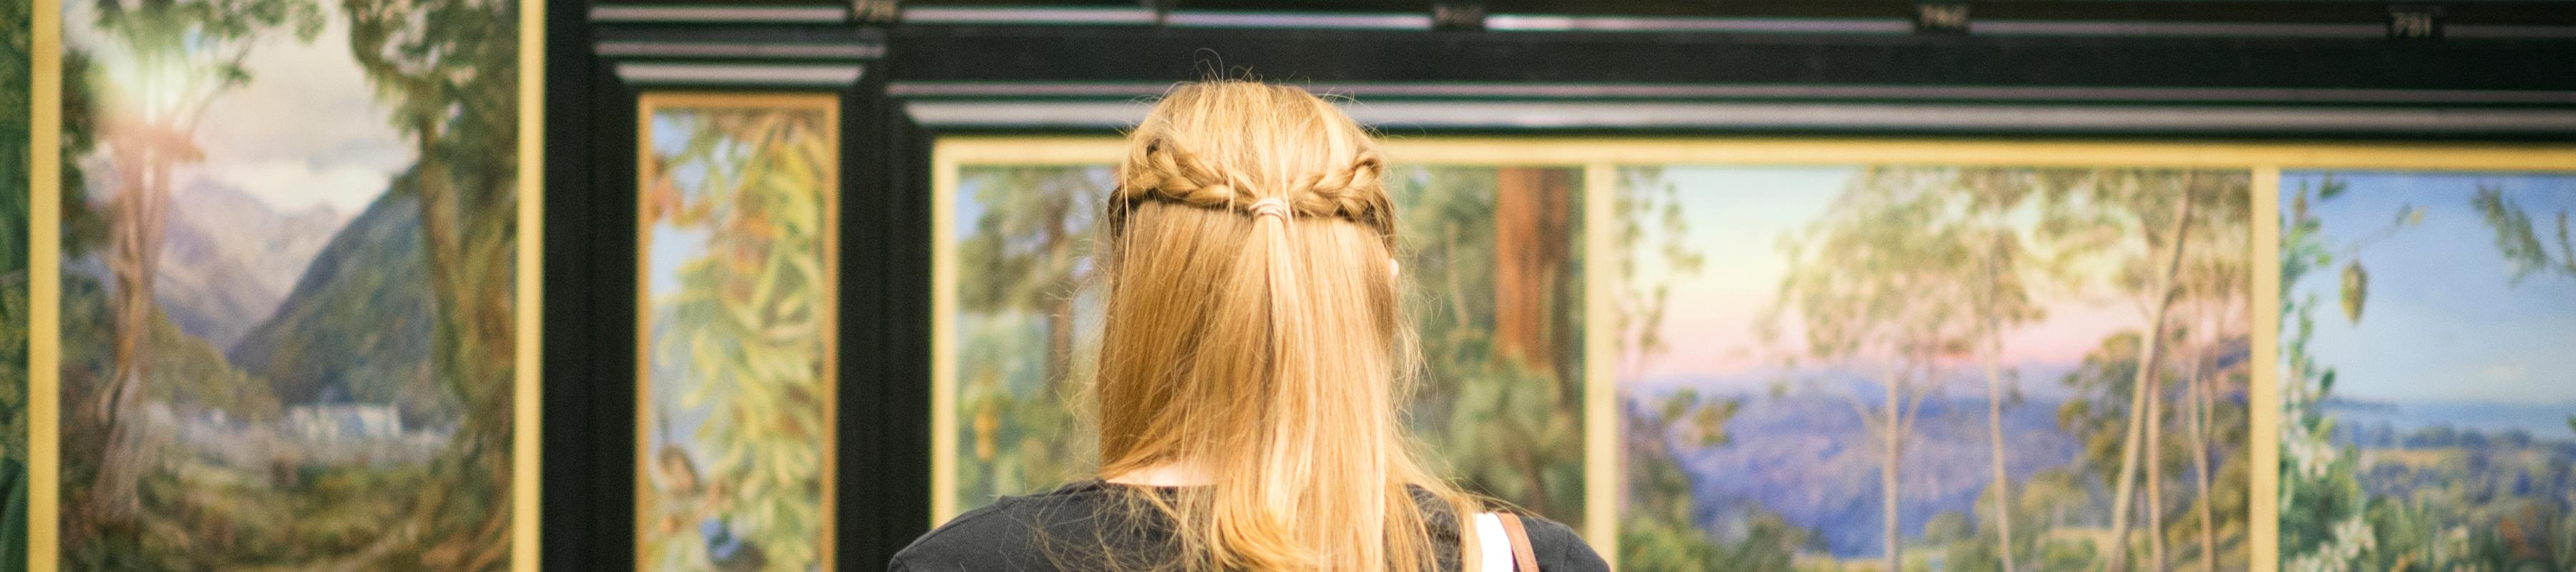 The back of a woman's head as she takes in the paintings at the Marianne North gallery